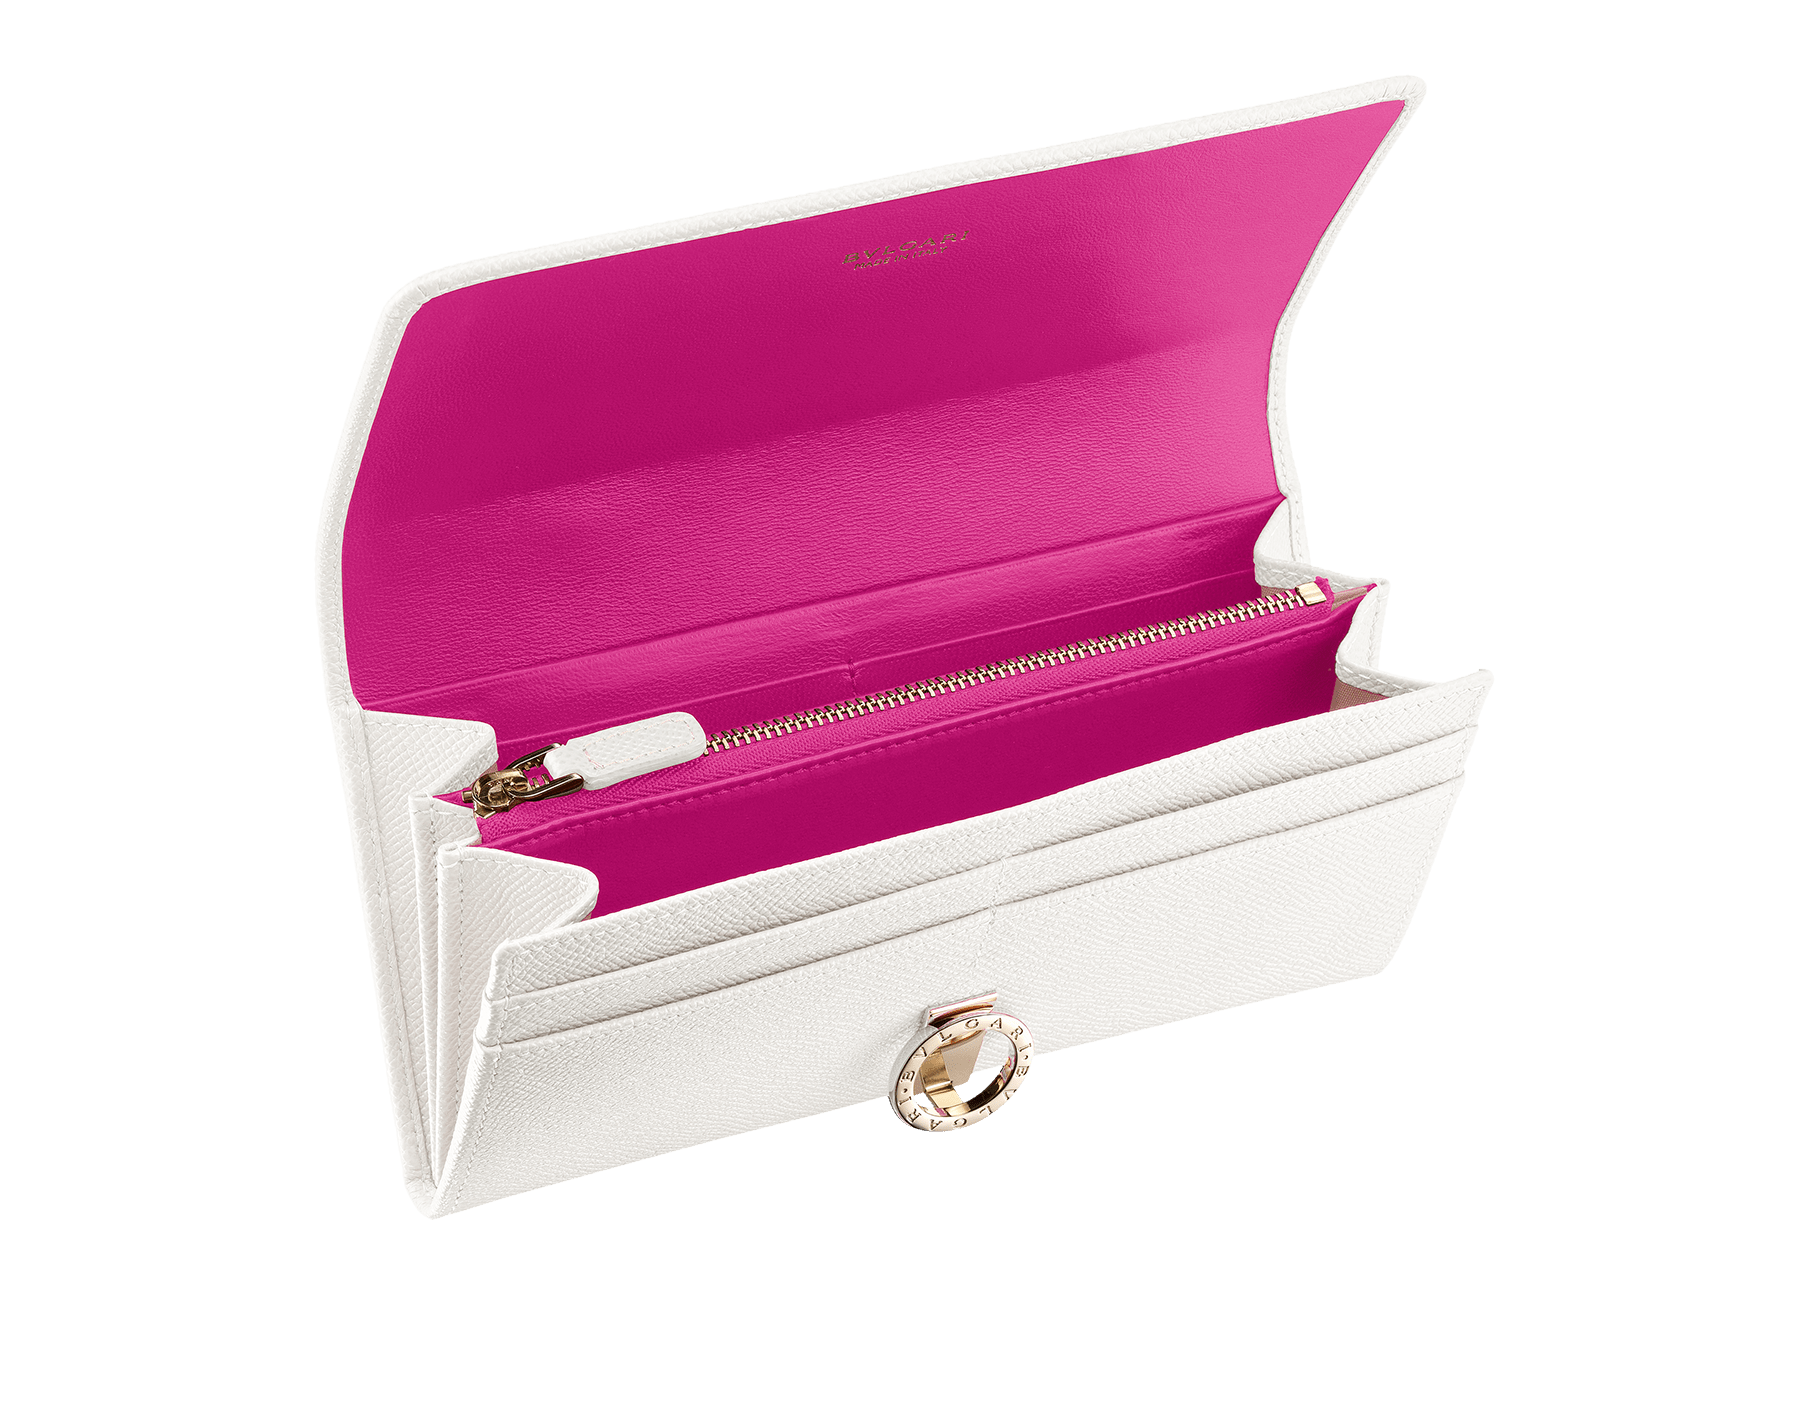 BVLGARI BVLGARI wallet pochette in cobalt tourmaline grain calf leather and aster amethyst nappa leather. Iconic logo closure clip in light gold plated brass 579-WLT-POCHE-16CCc image 2